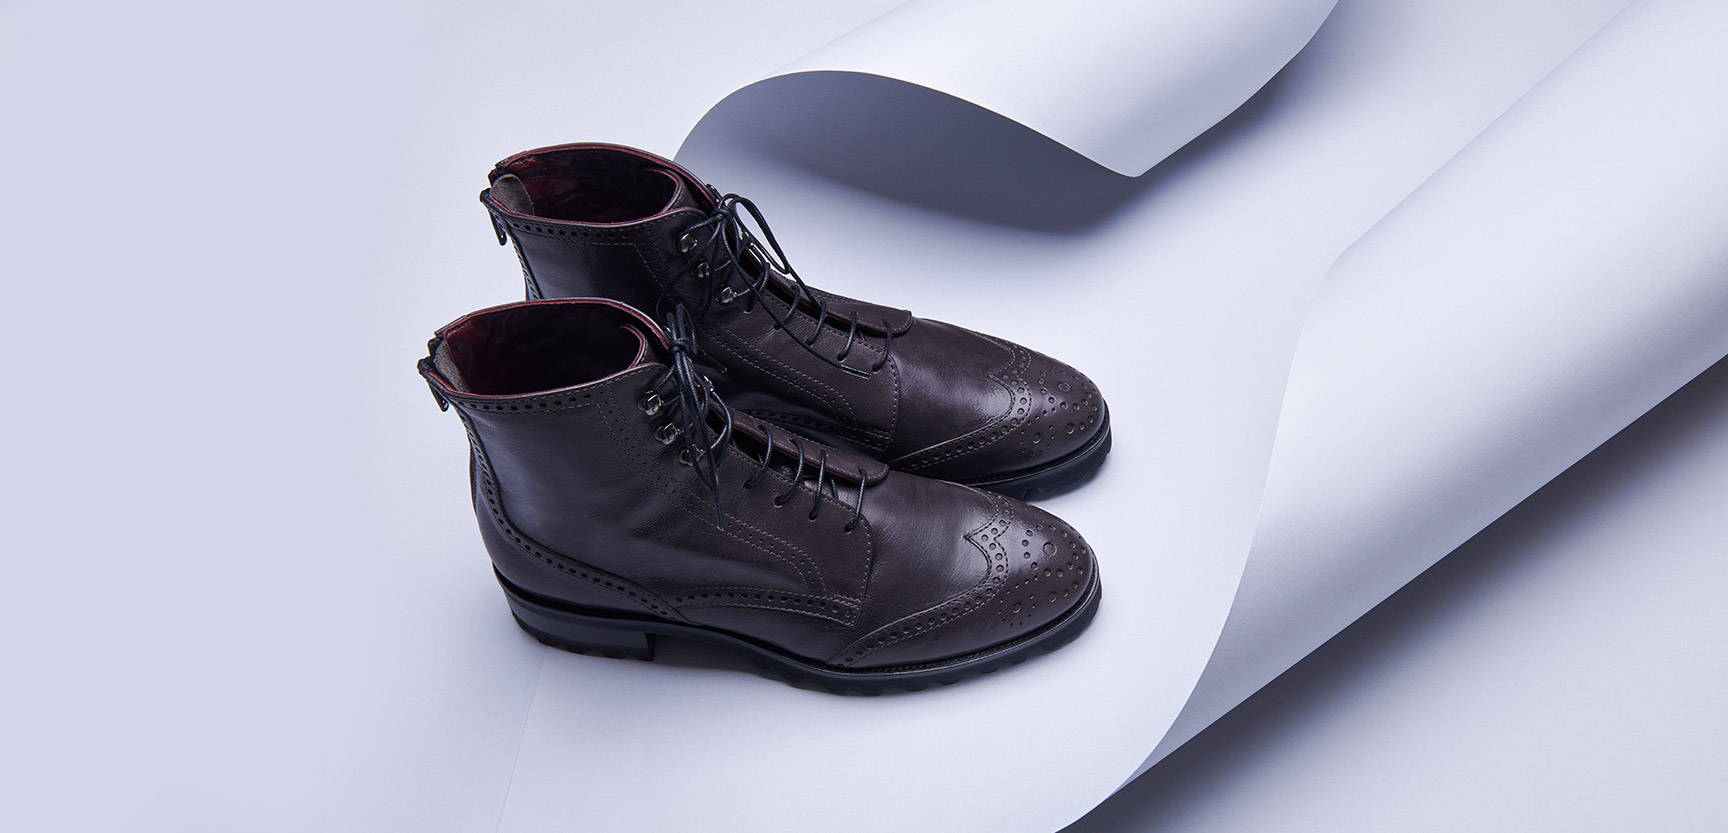 brown women's boot with laces